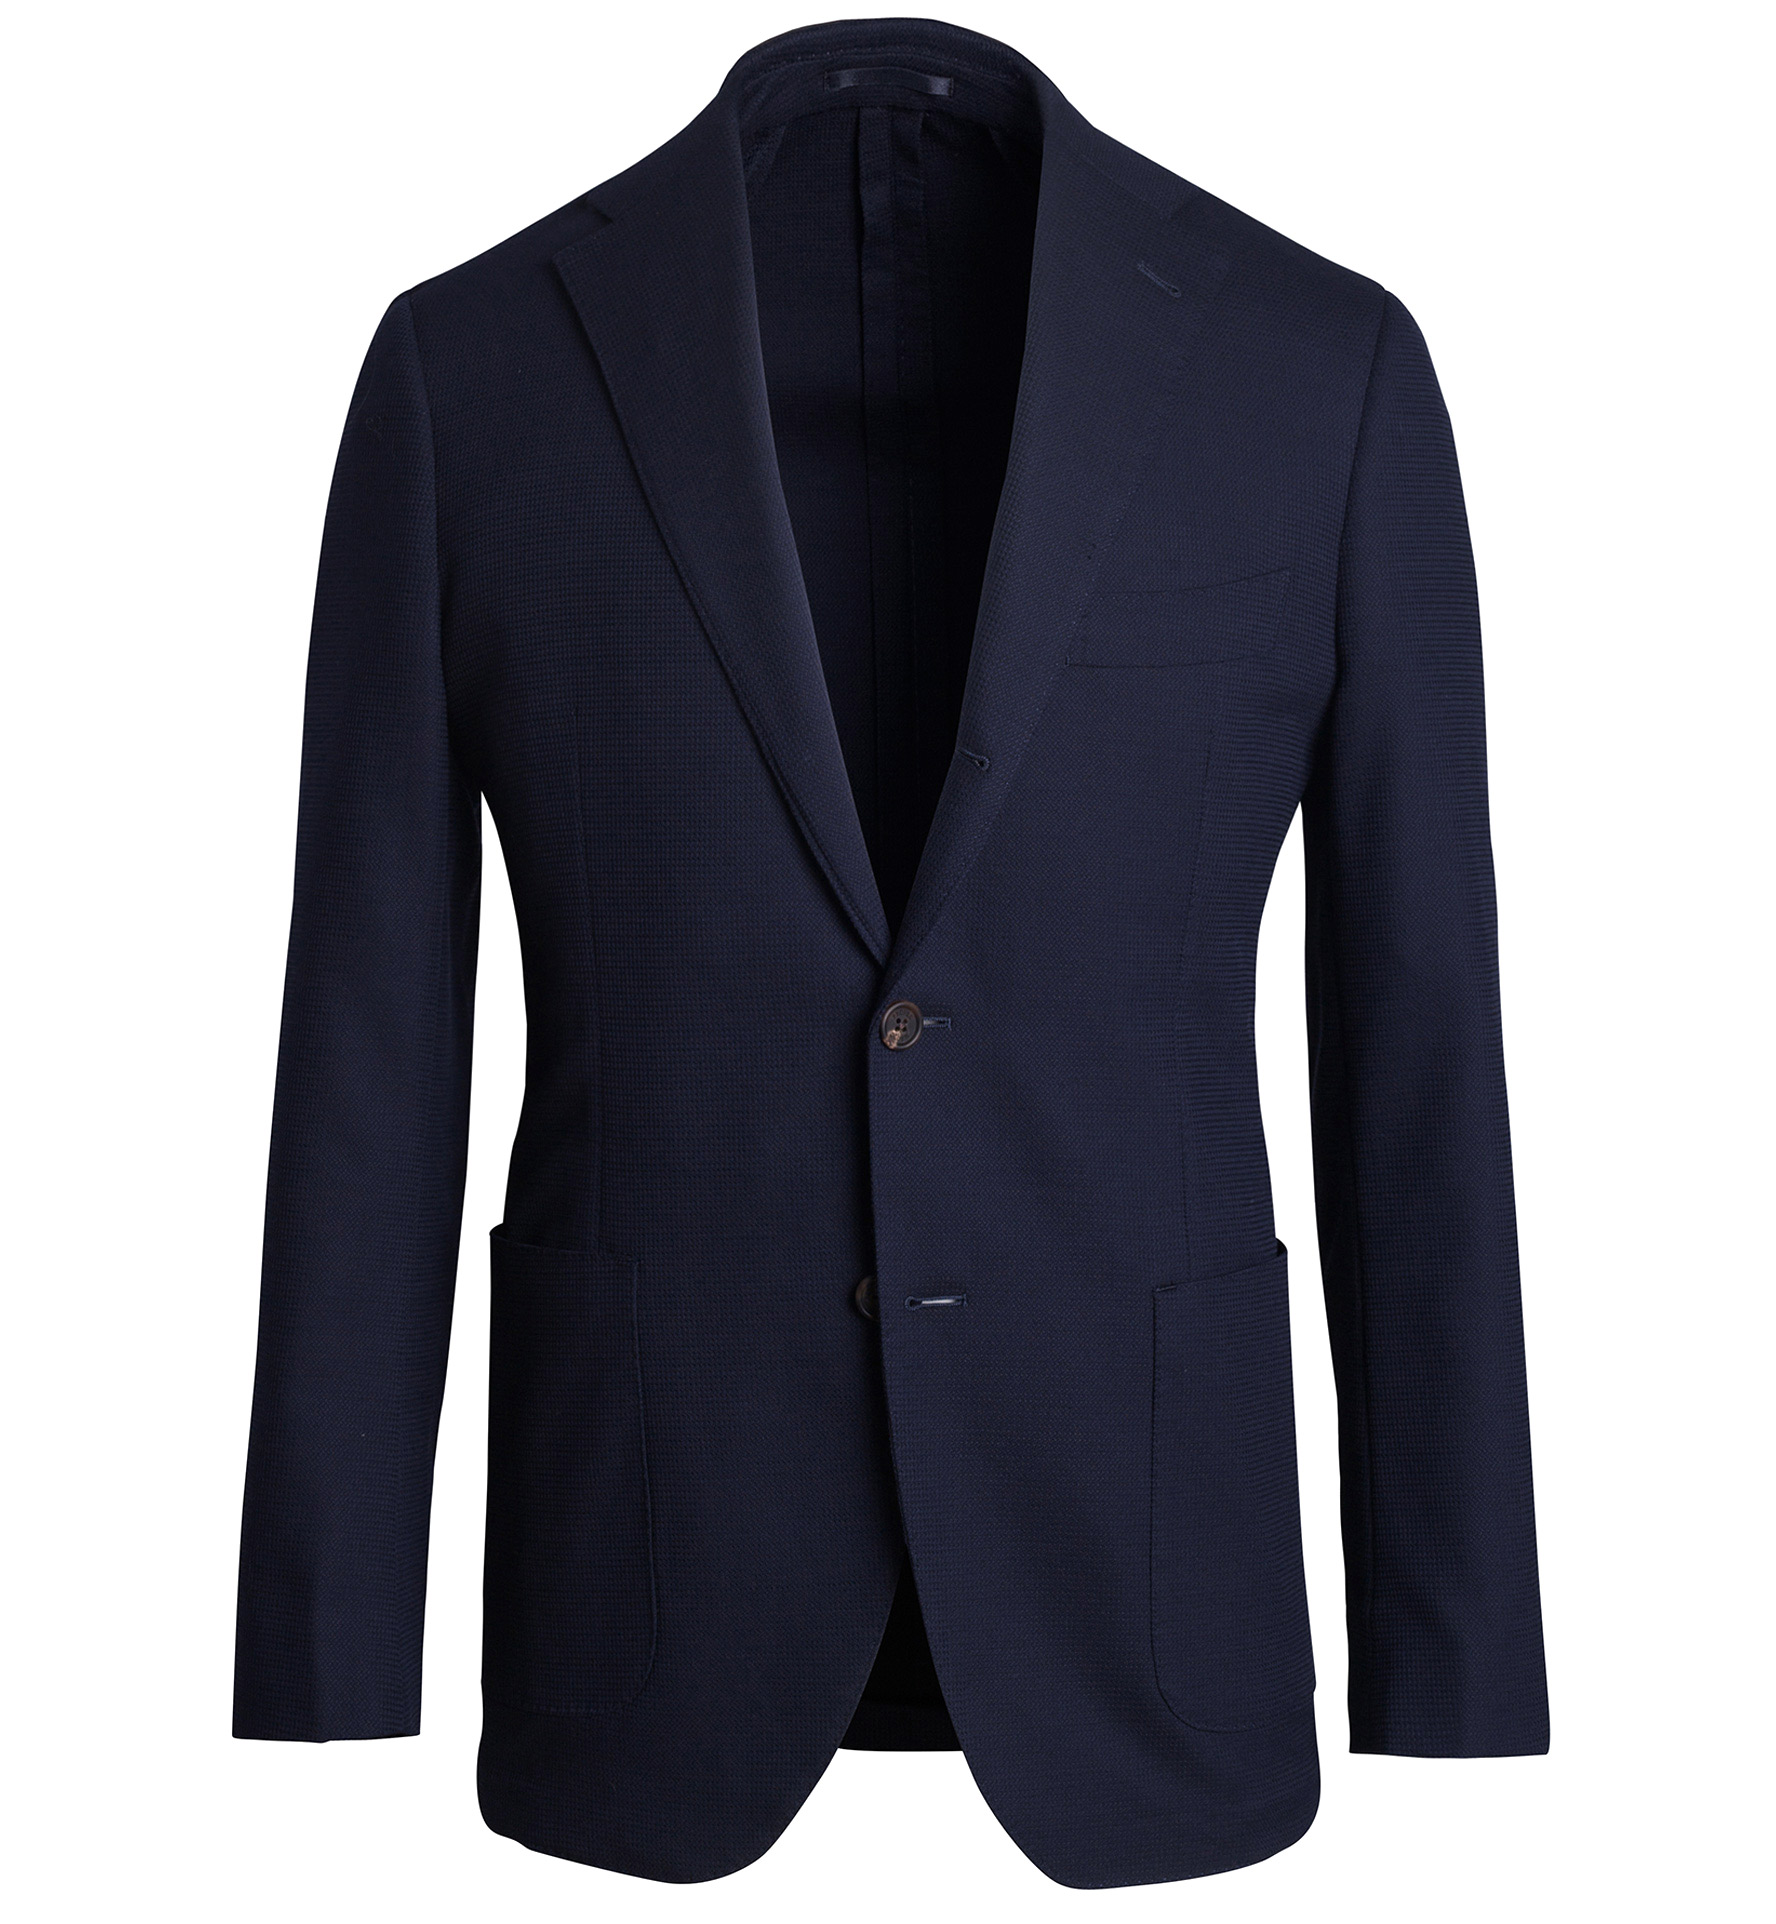 Zoom Image of Bedford Navy Stretch Wool and Cotton Hopsack Jacket